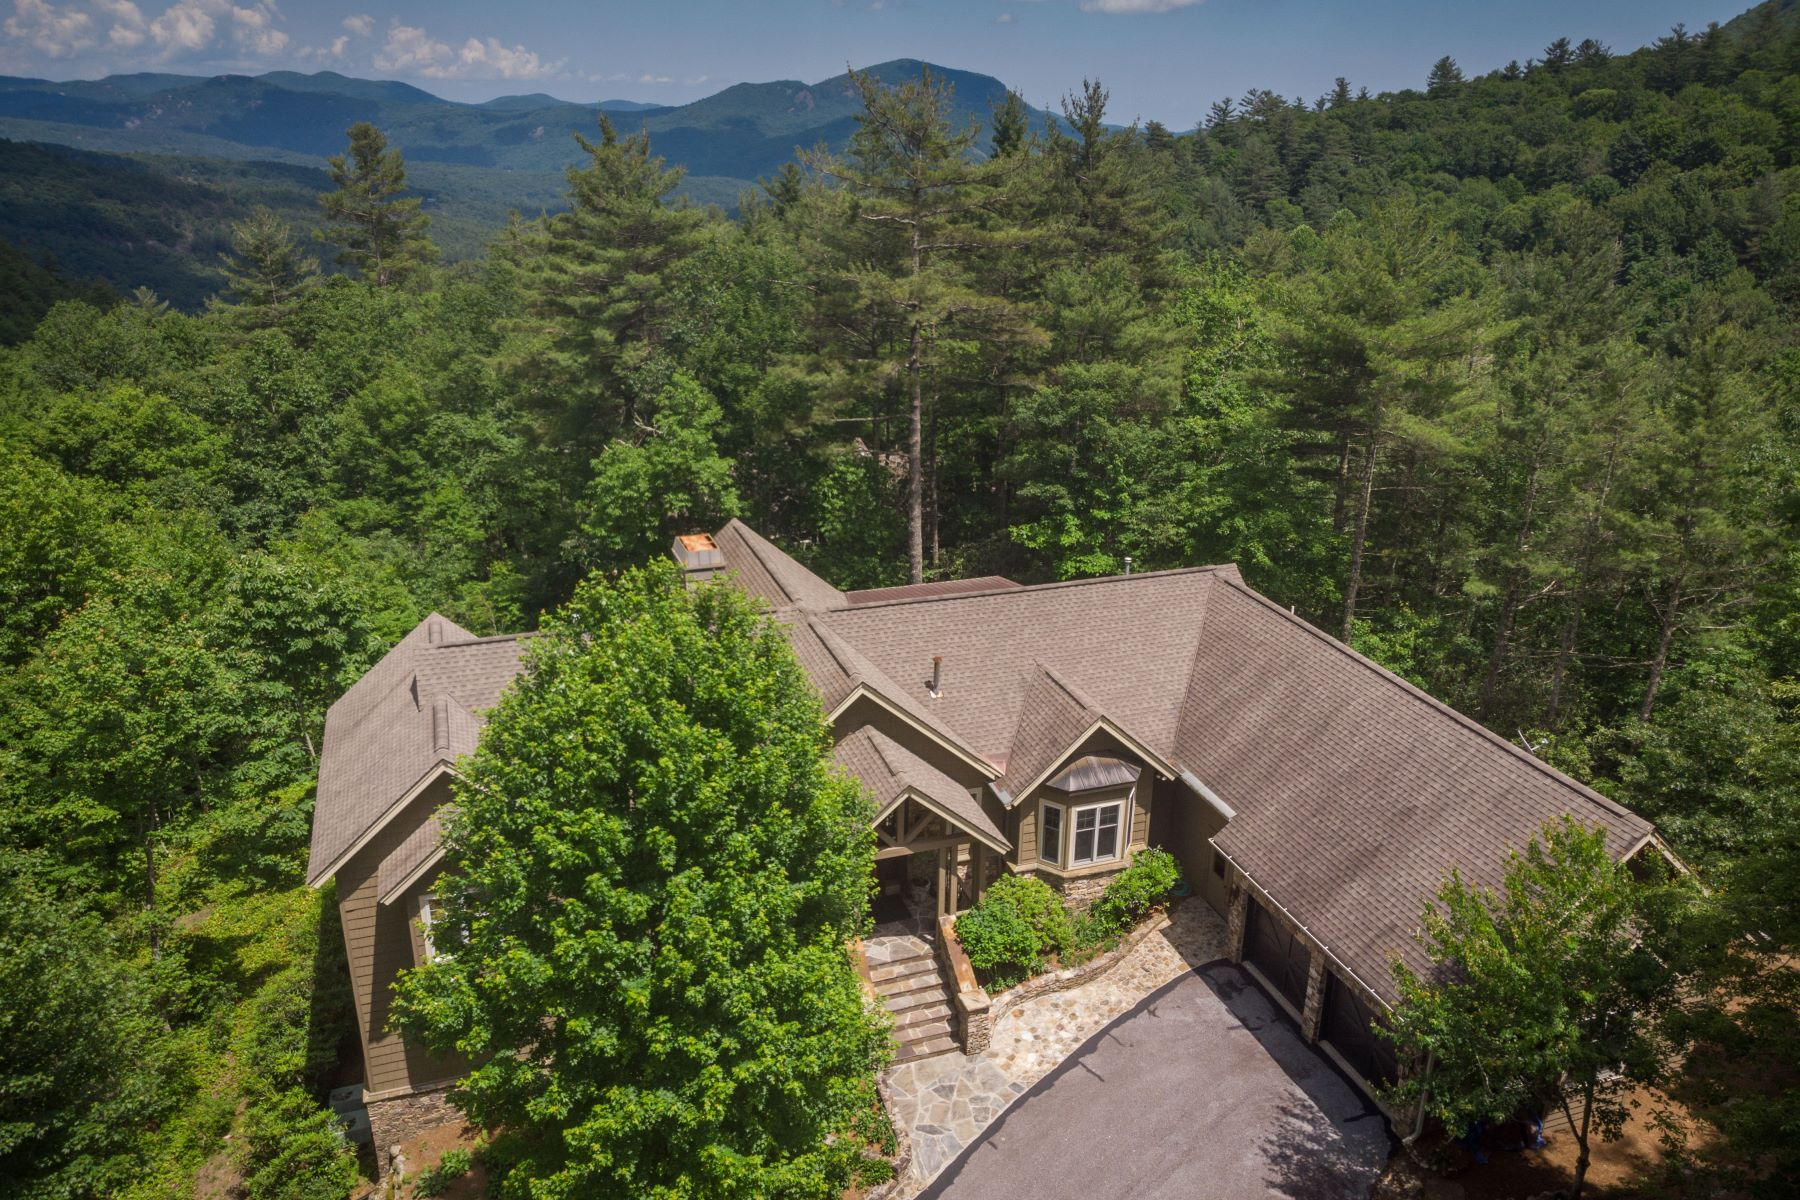 Single Family Home for Active at 26 Norton Court Highlands, North Carolina 28741 United States